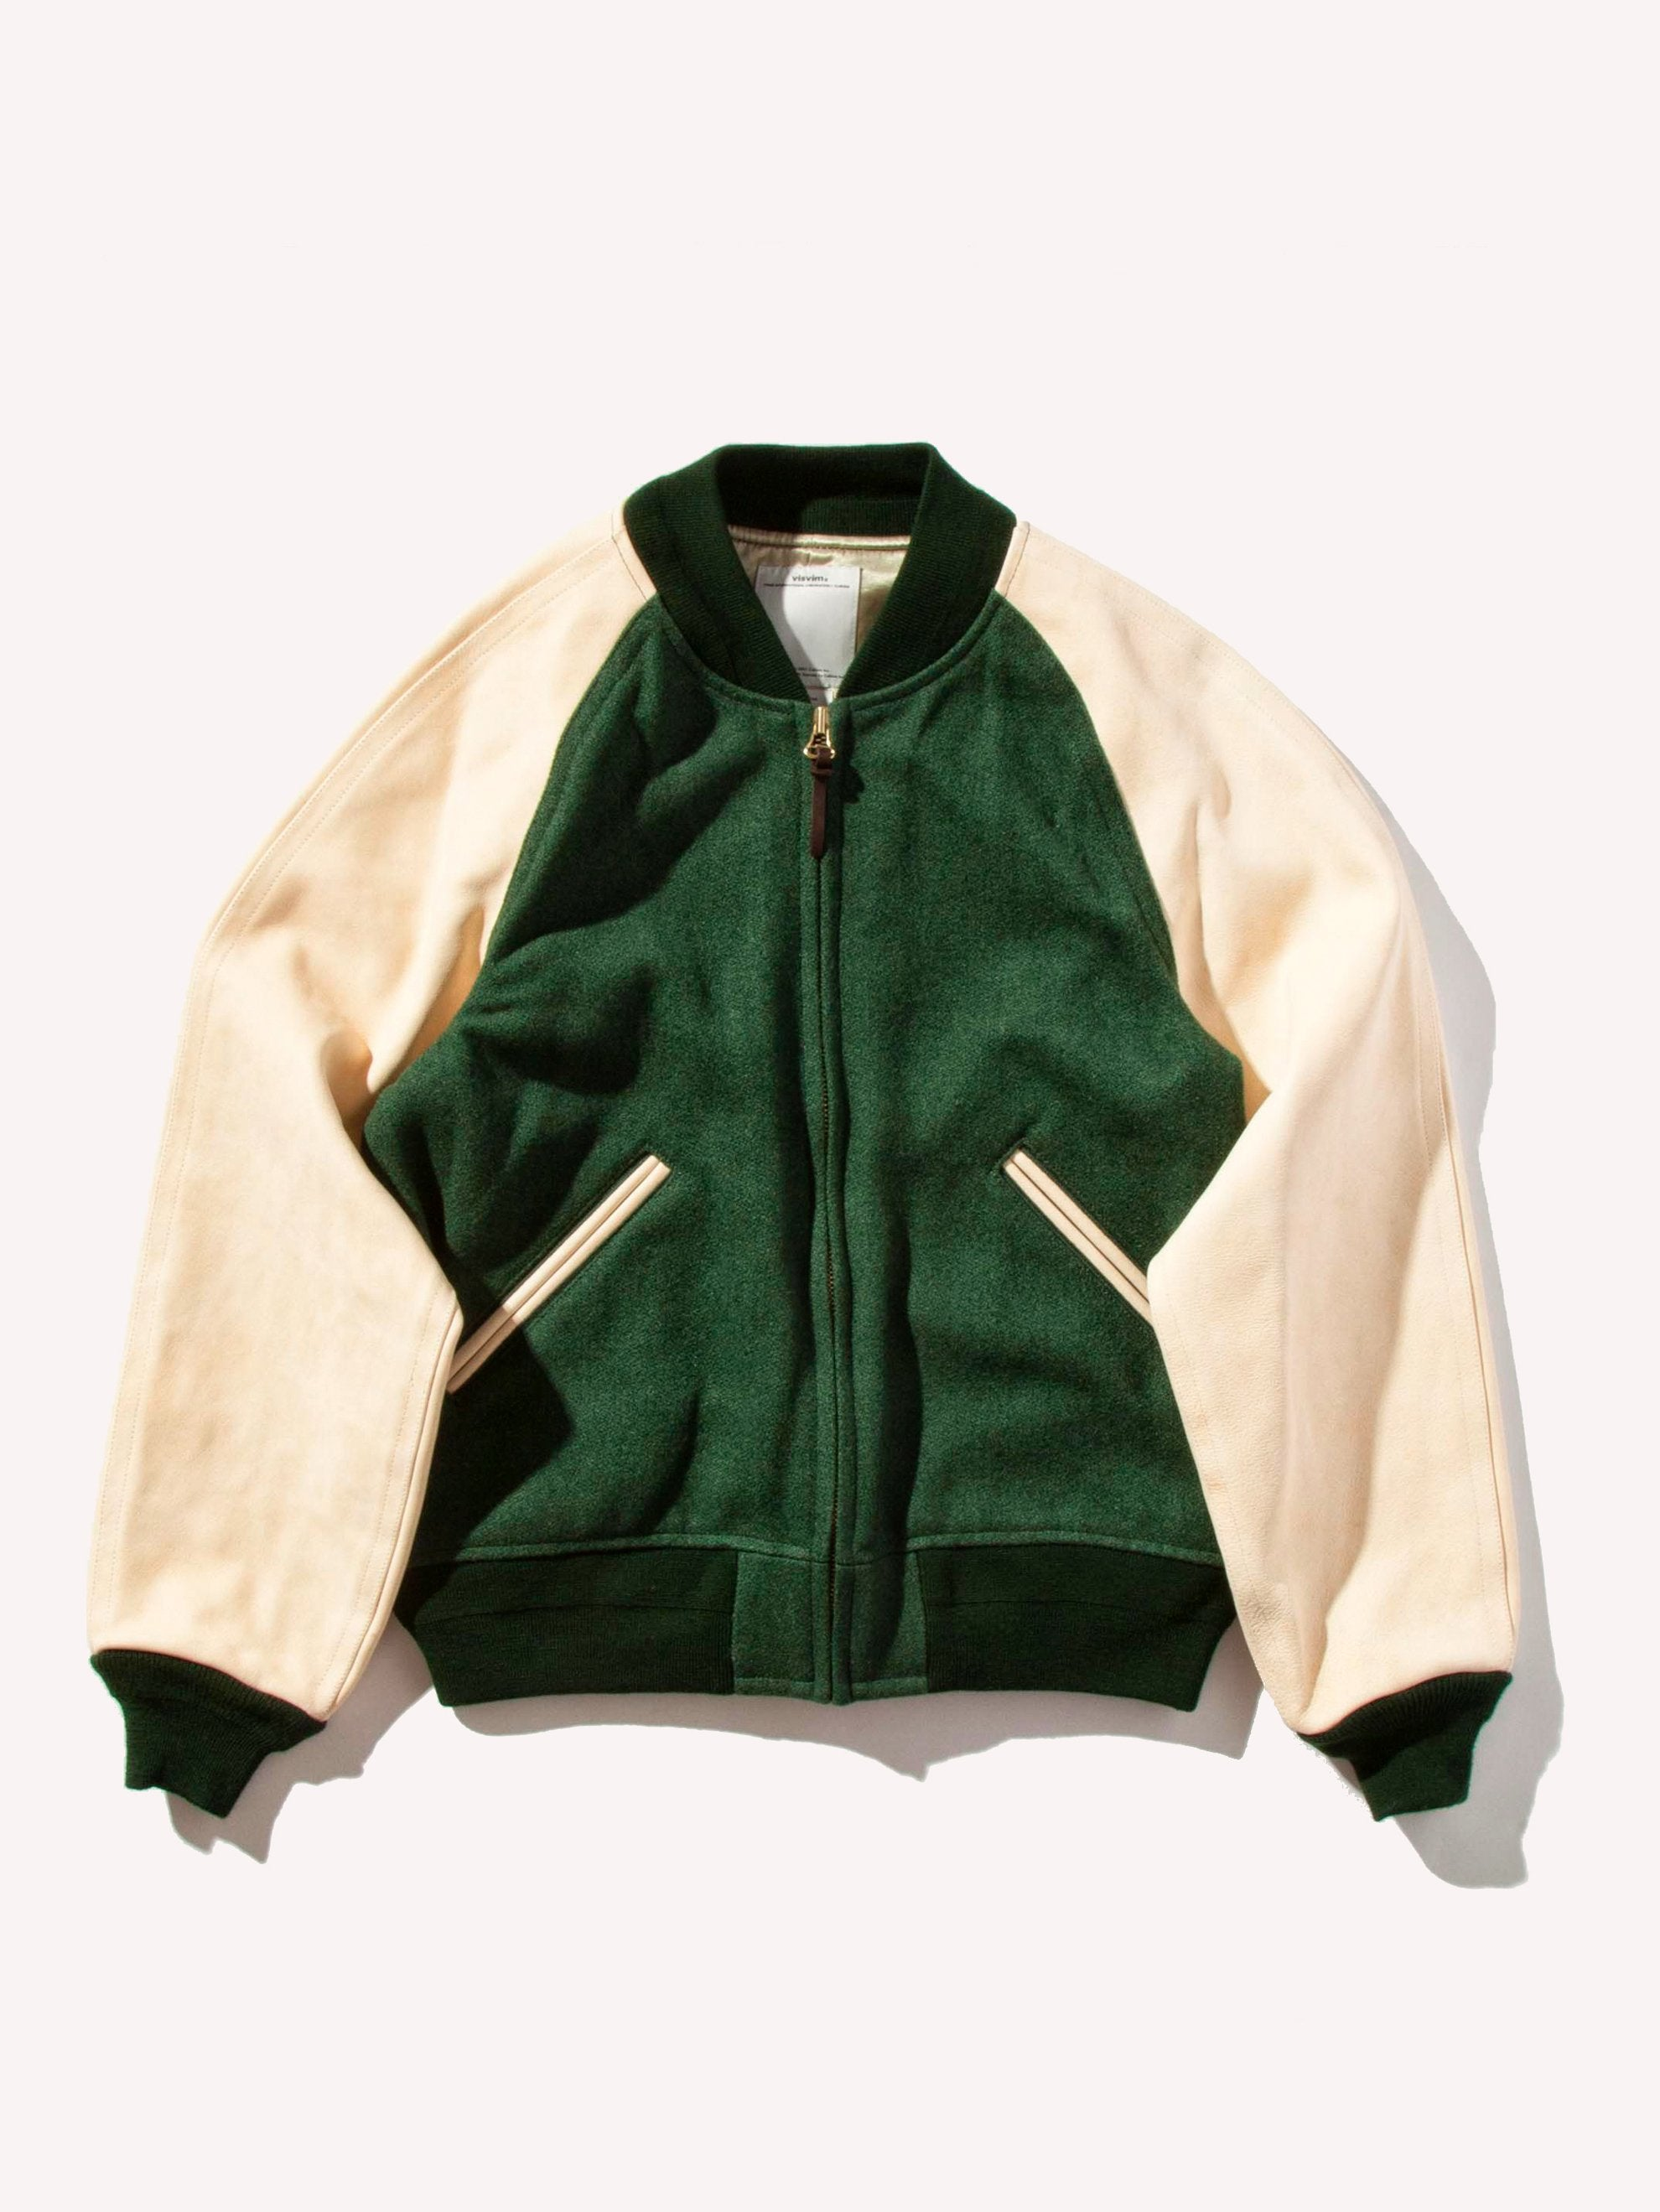 Green Varsity Jacket (Tweed) 1